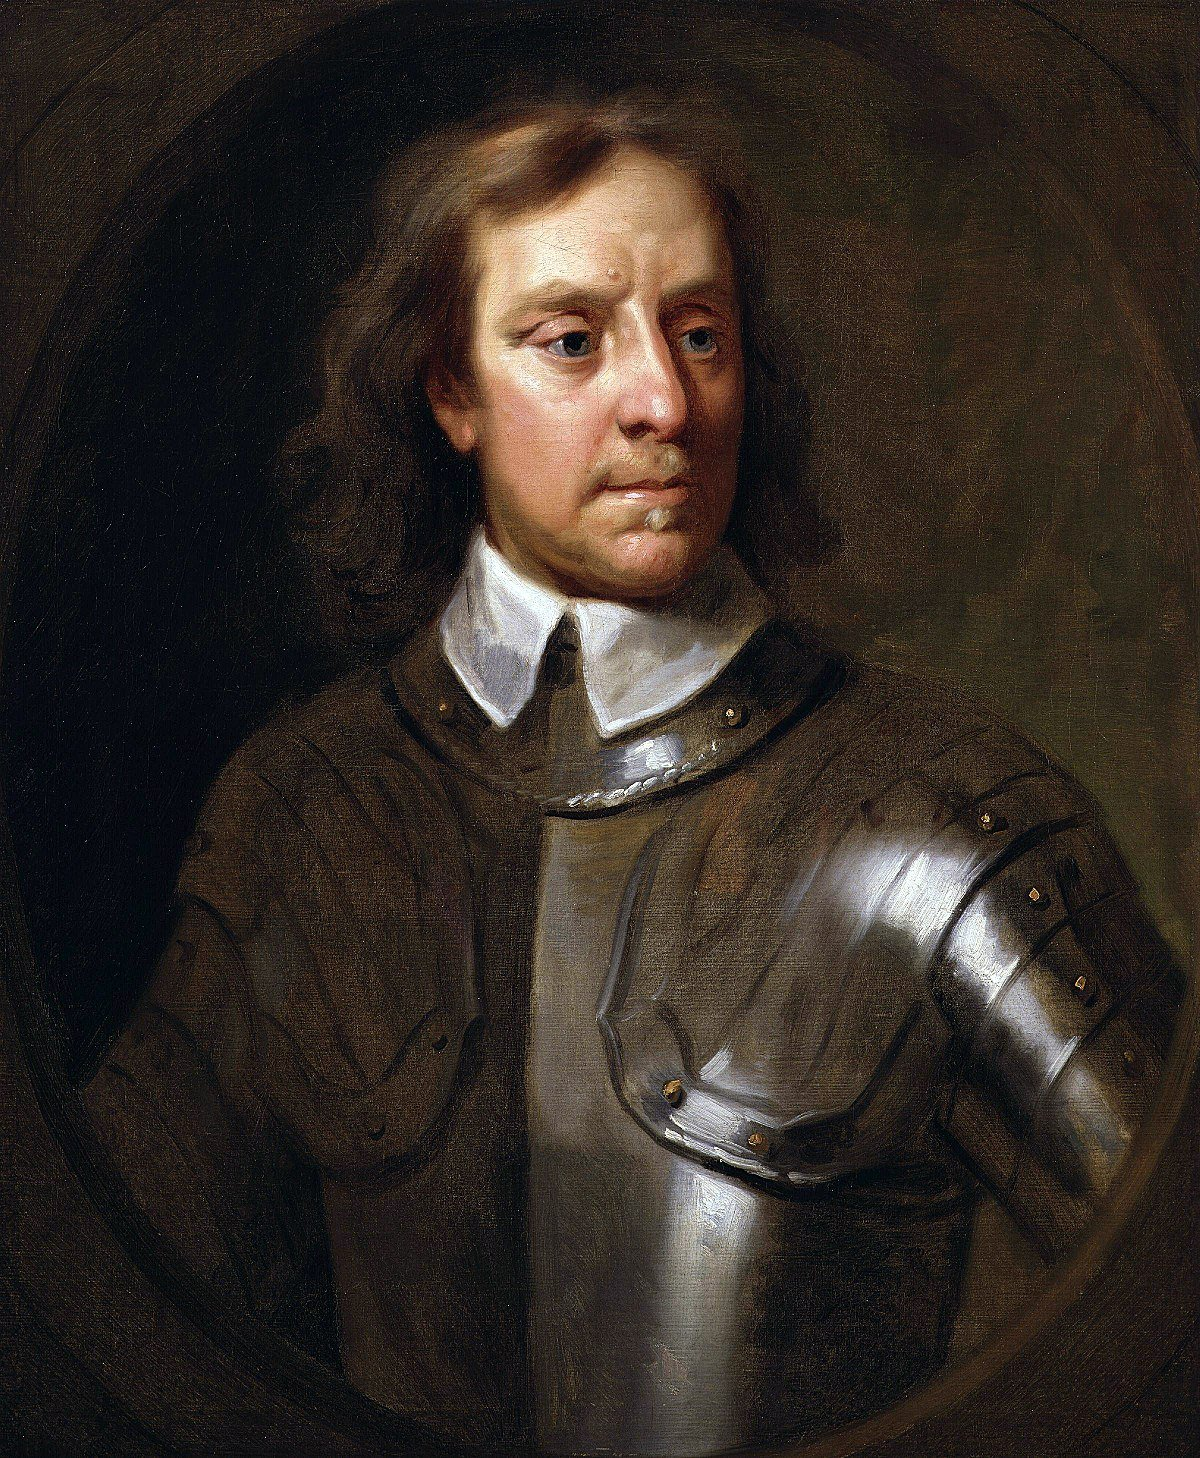 https://disgustingmen.com/wp-content/uploads/2018/05/1200px-Oliver_Cromwell_by_Samuel_Cooper.jpg